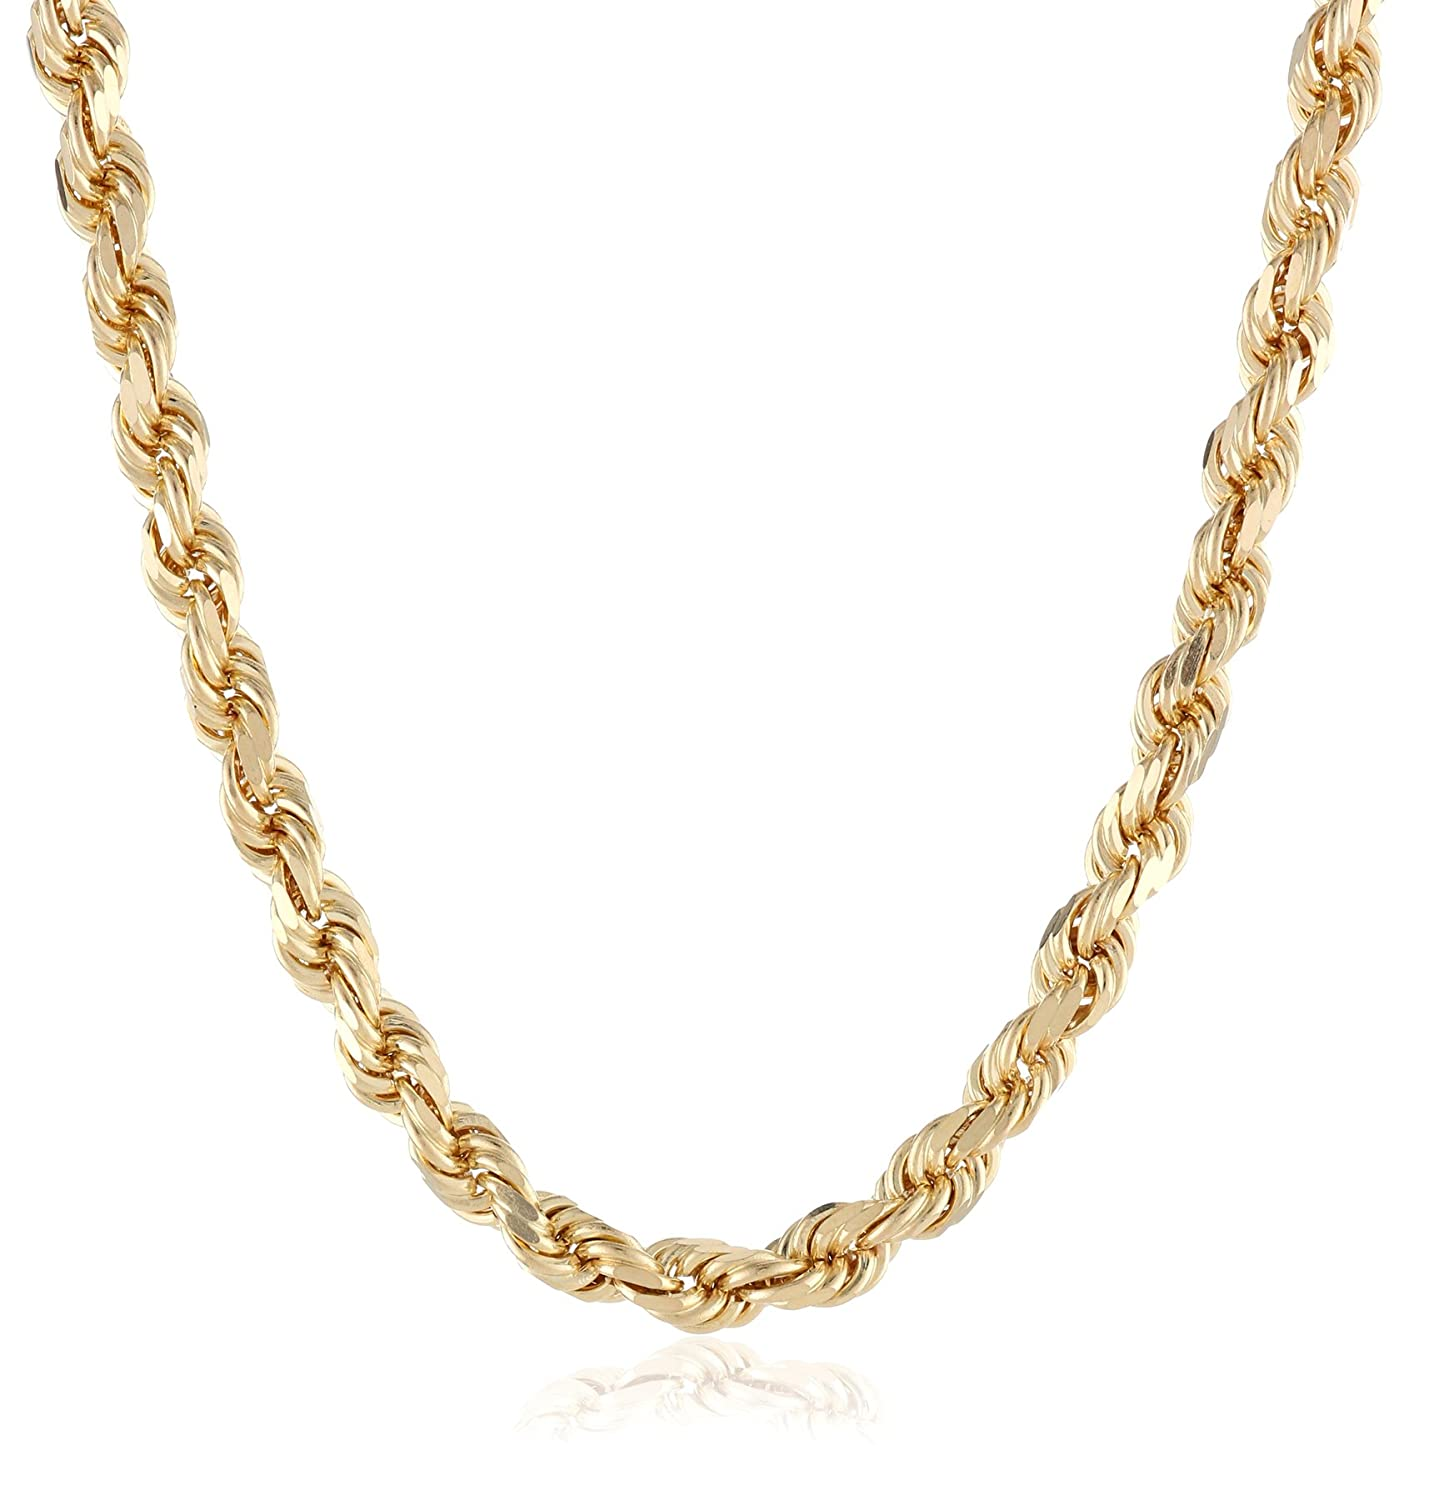 mm inches itm byzantine grams solid necklace gold mens chains women chain yellow